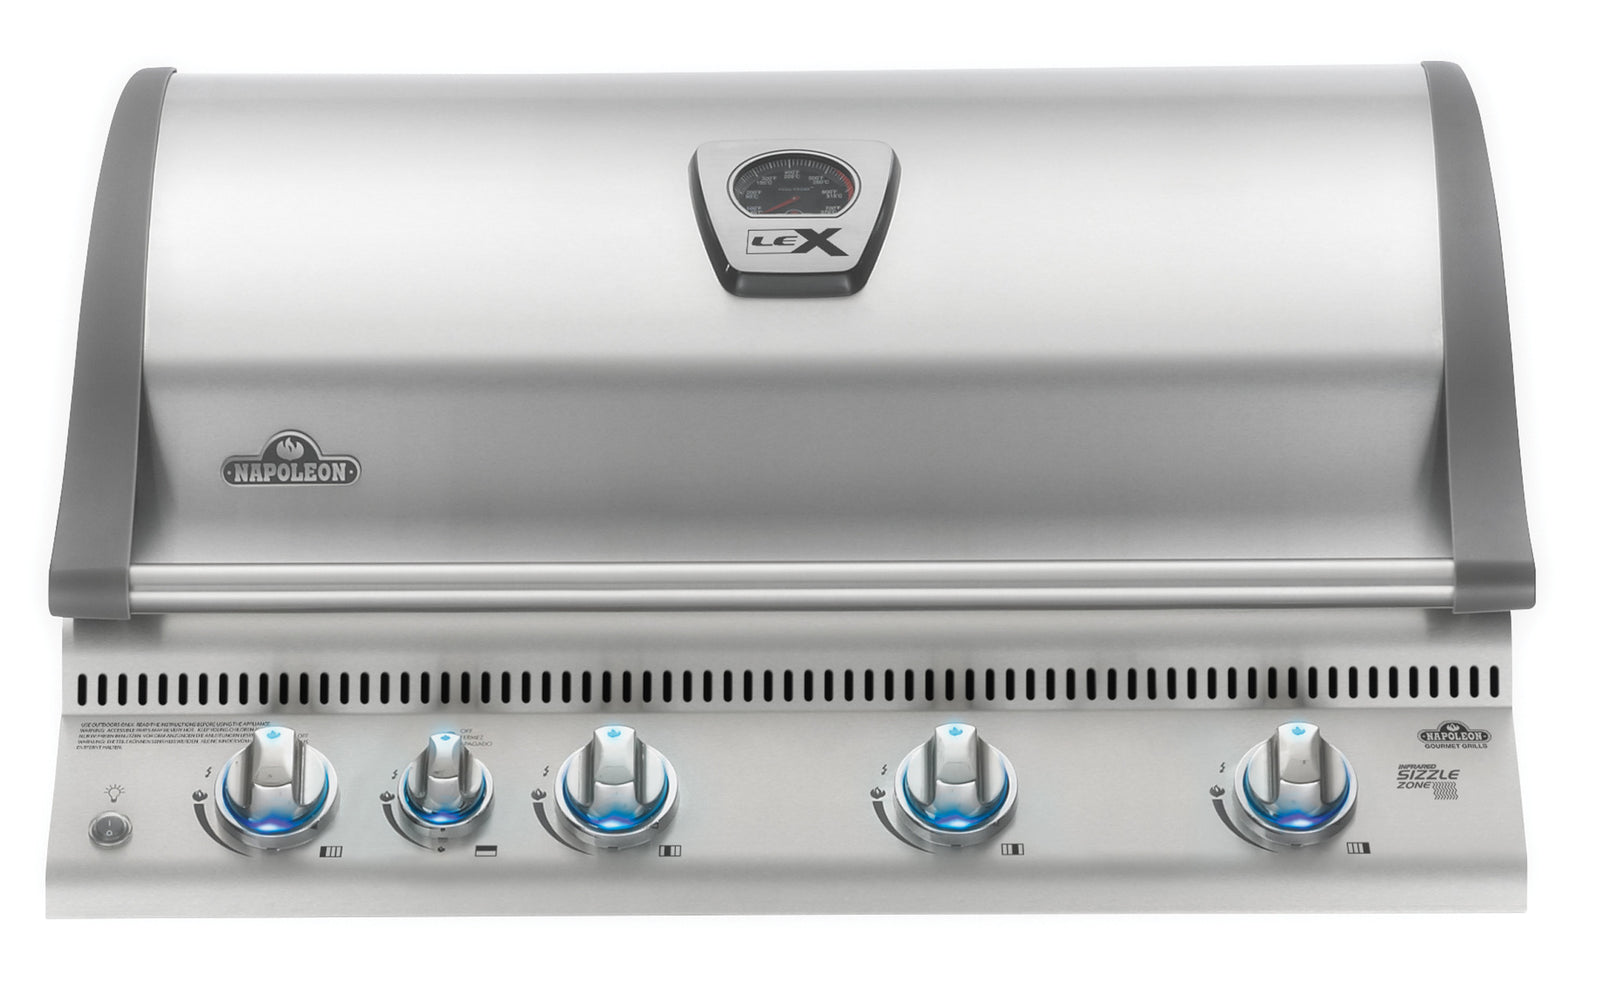 Built In LEX 605 with Infrared Bottom and Rear Burners-BBQ STORE MALTA